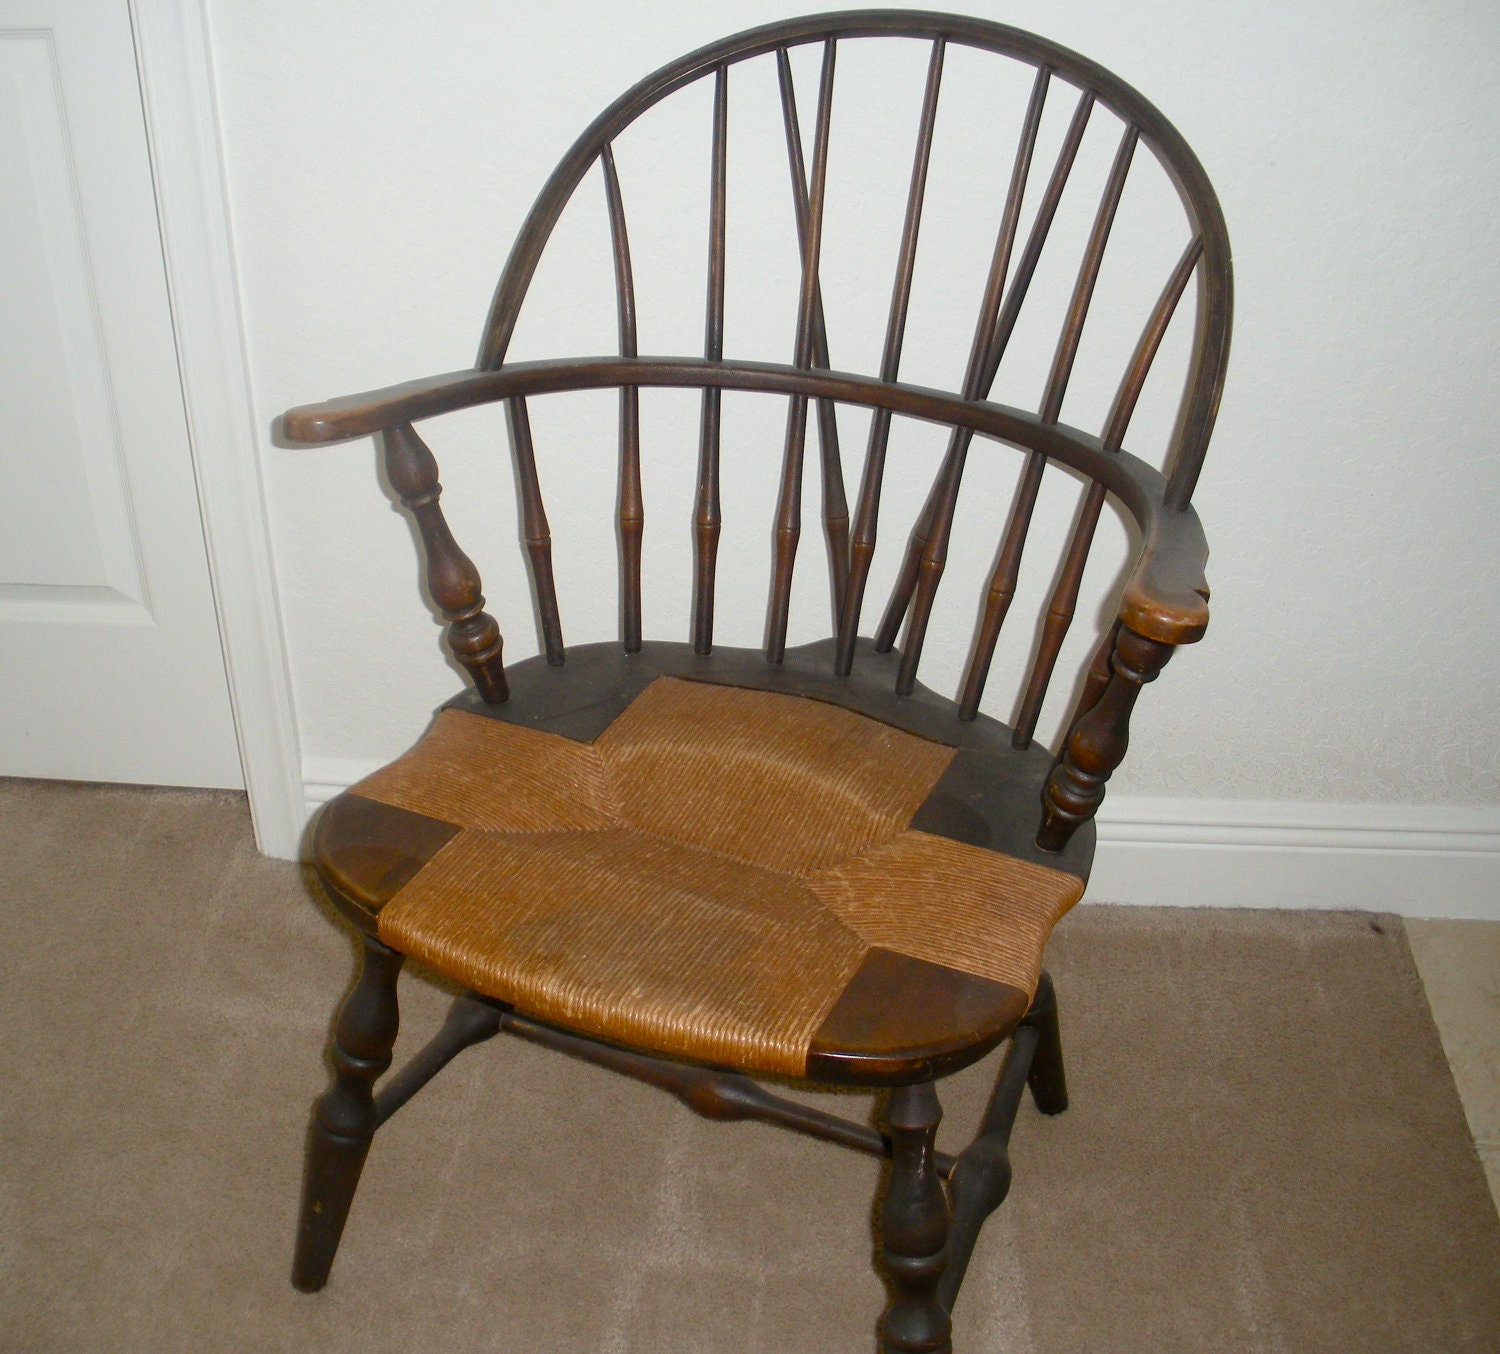 & Antique Nichols u0026 Stone Windsor Chair u2013 Haute Juice